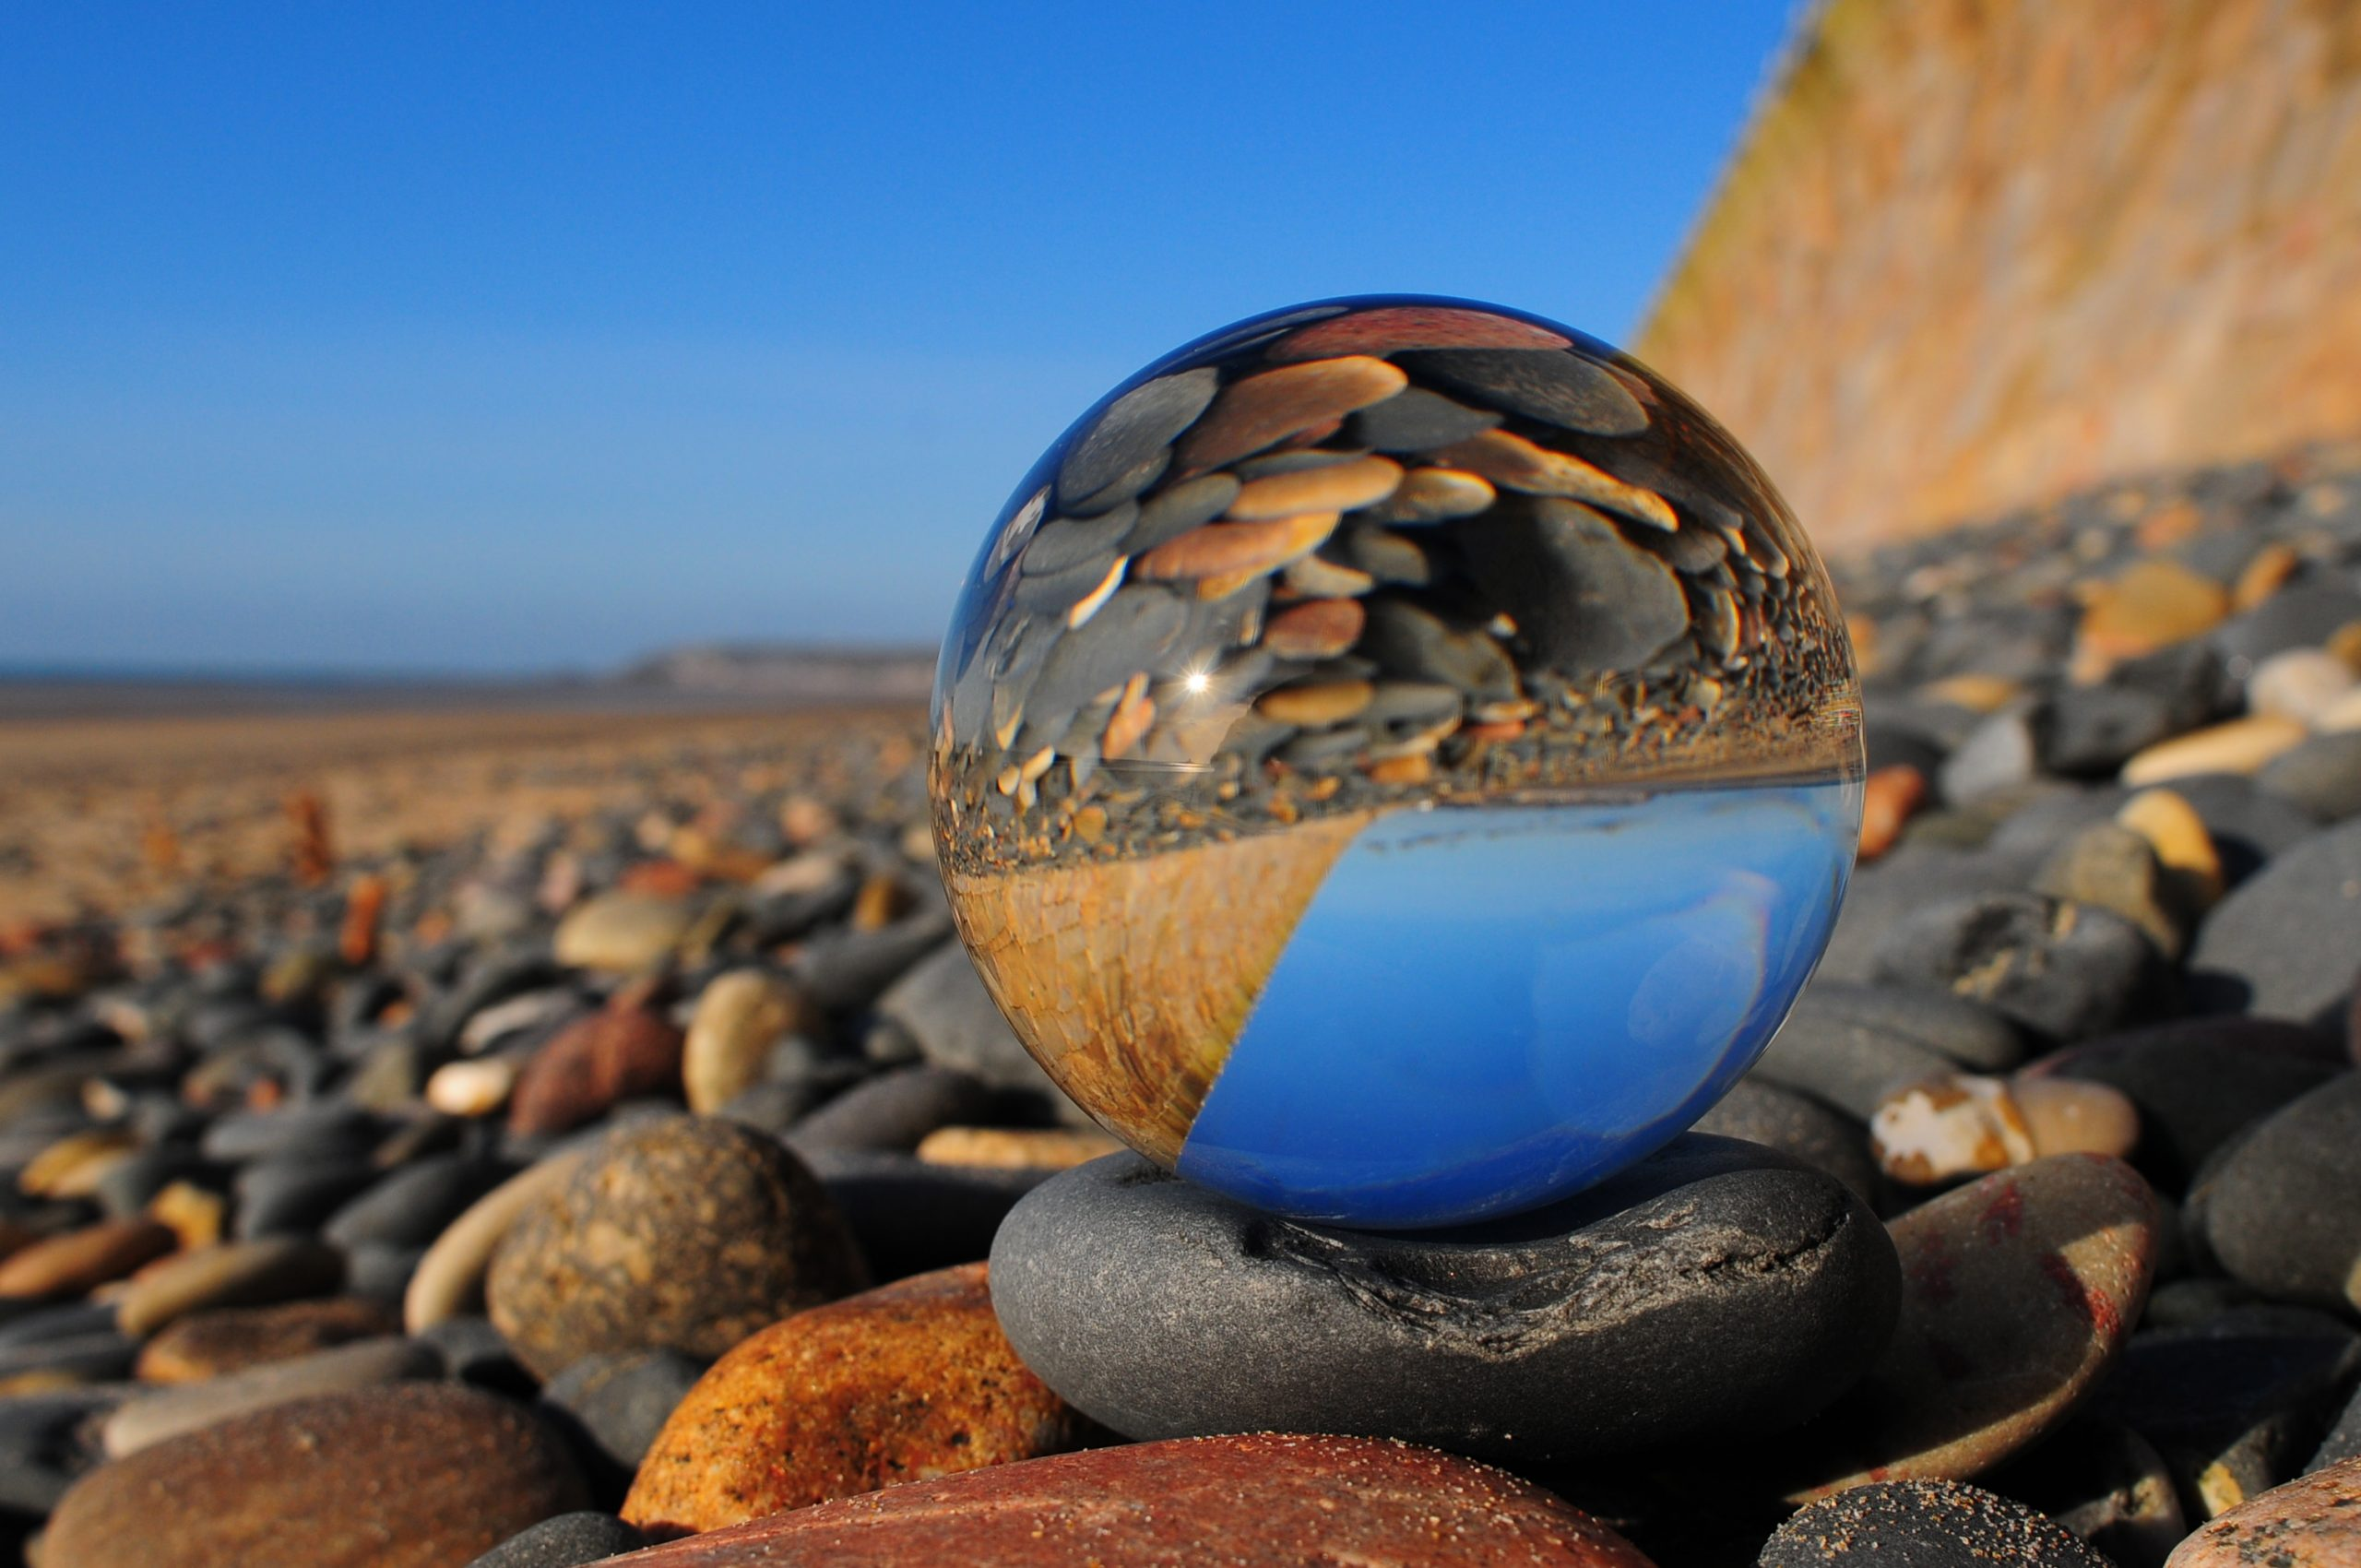 There is a ball on a pebble beach which is a metaphor for the different perspectives on domestic violence.